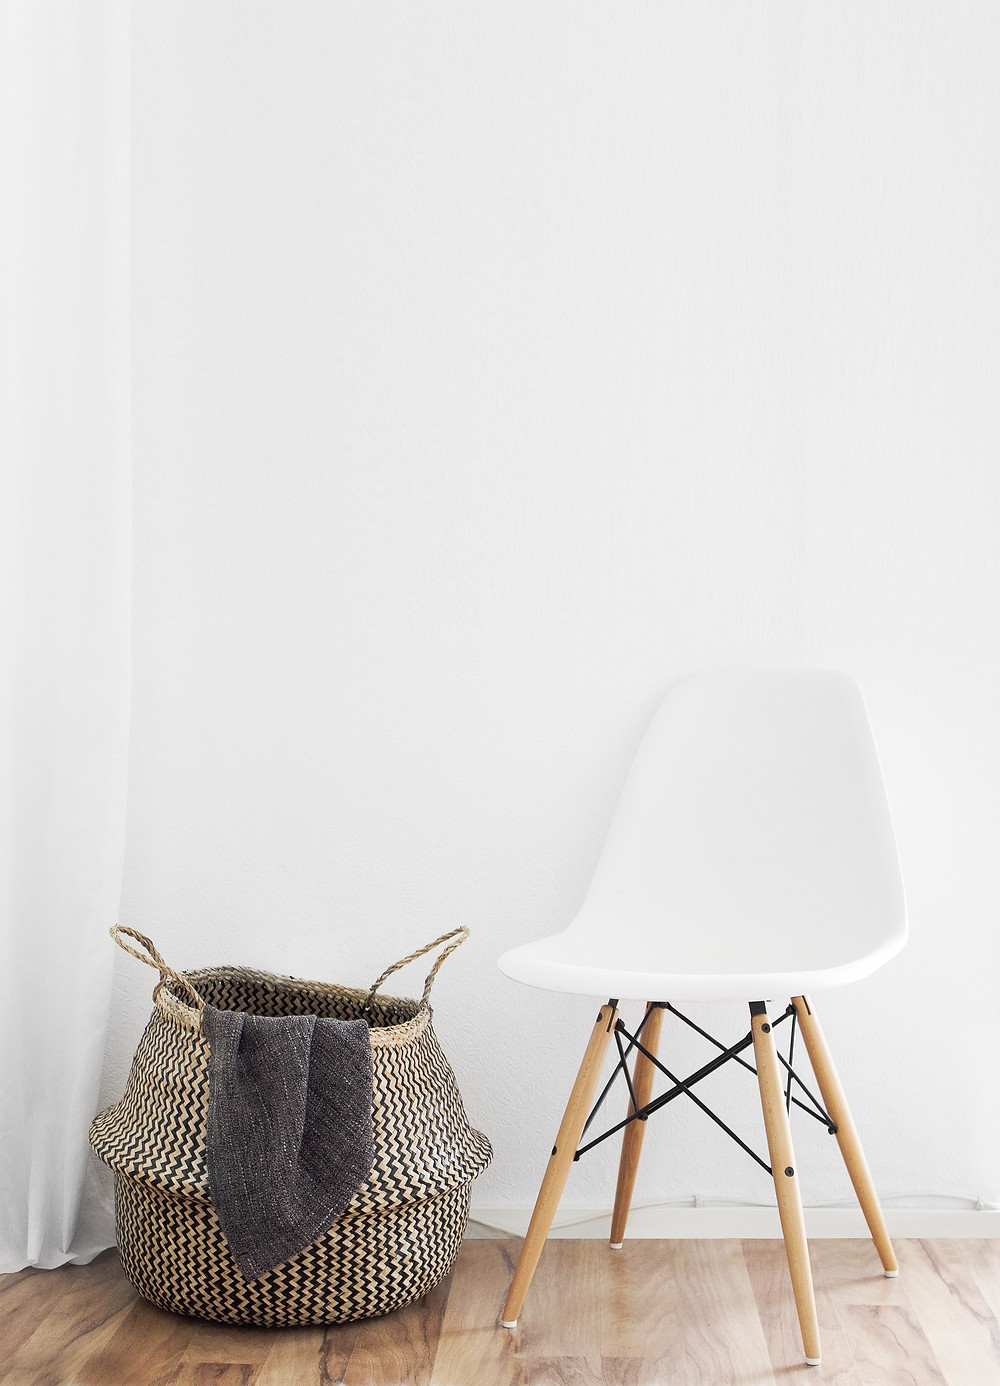 A smooth plastic chair beside a woven basket.